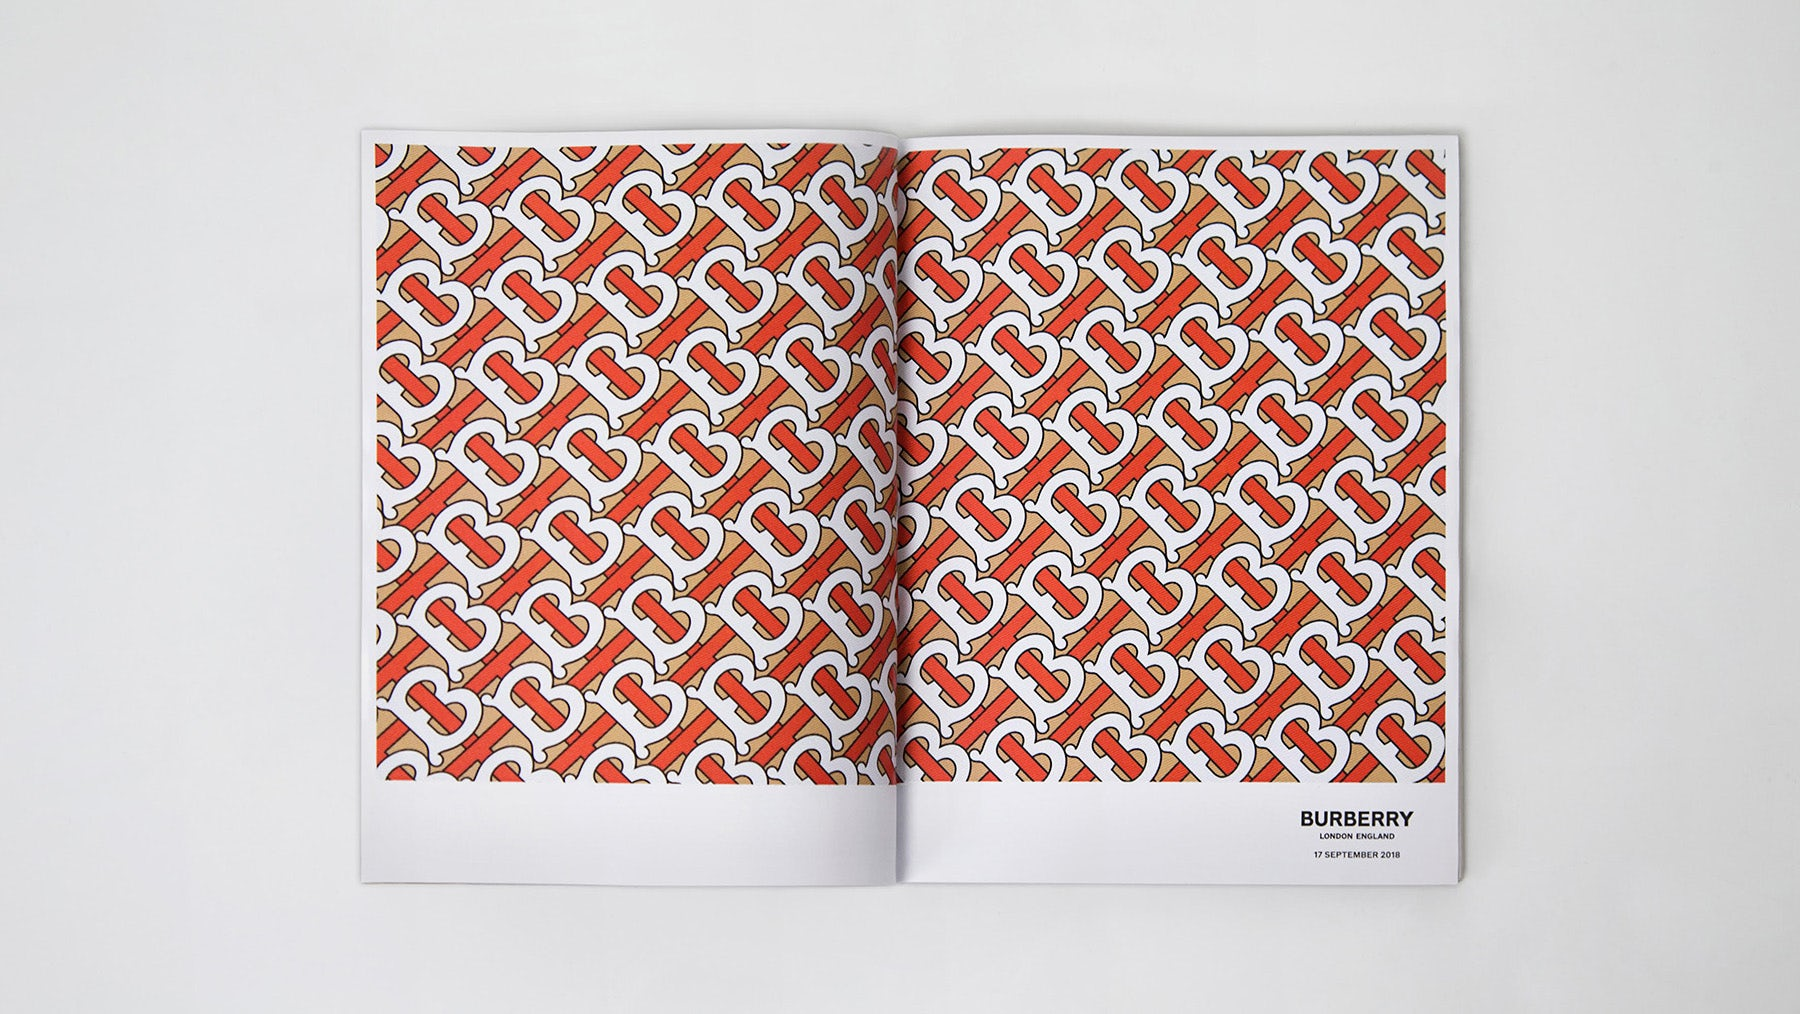 Burberry's new monogram developed by Riccardo Tisci in collaboration with Peter Saville | Source: Courtesy